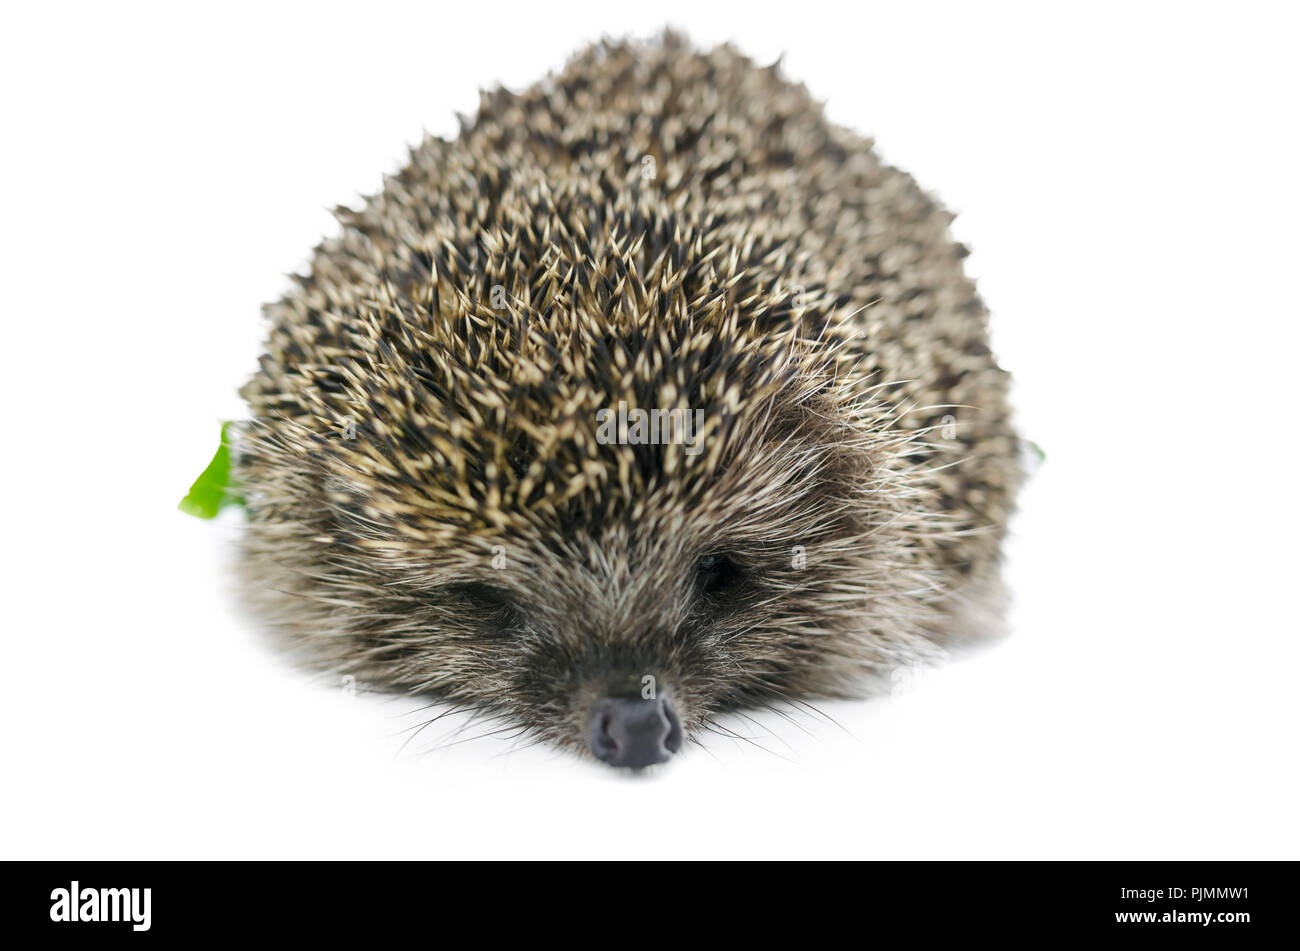 Front view of  hedgehog. Isolated over white background. - Stock Image